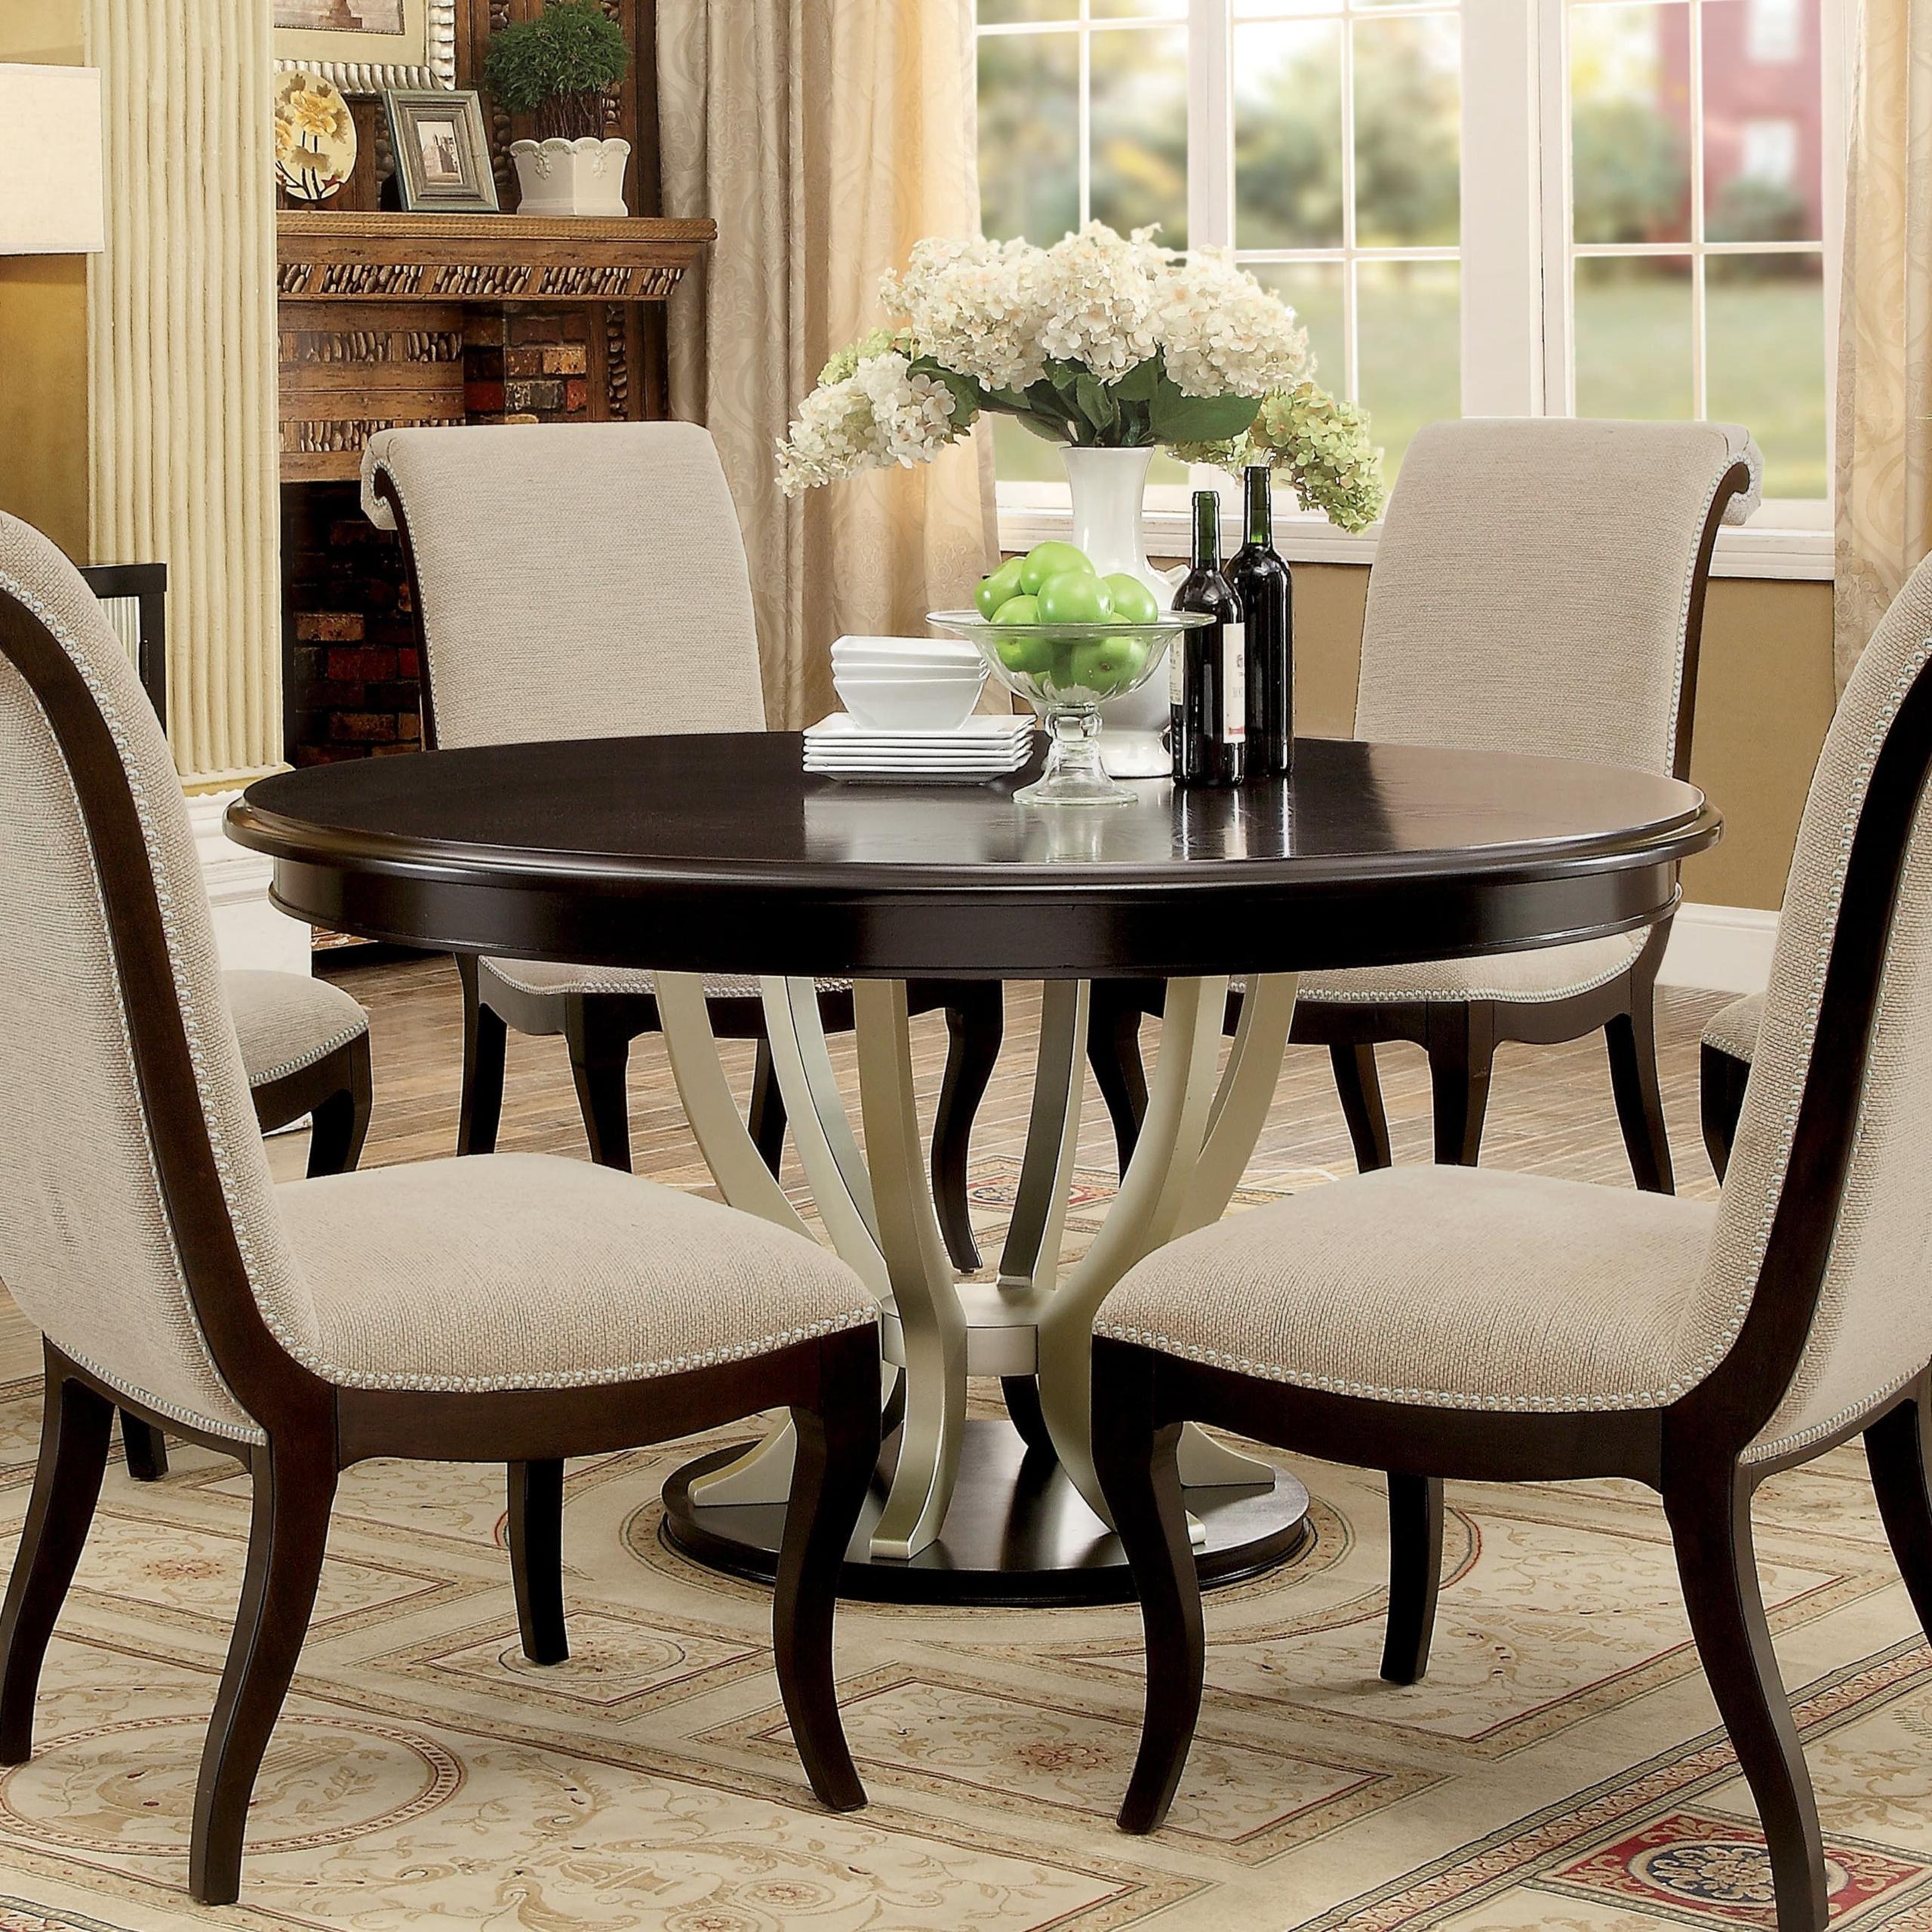 Round dining table for 6 Glass Top Amazing Round Dining Room Table For Persons Under Iloveromaniaco Round Dining Table For Visual Hunt